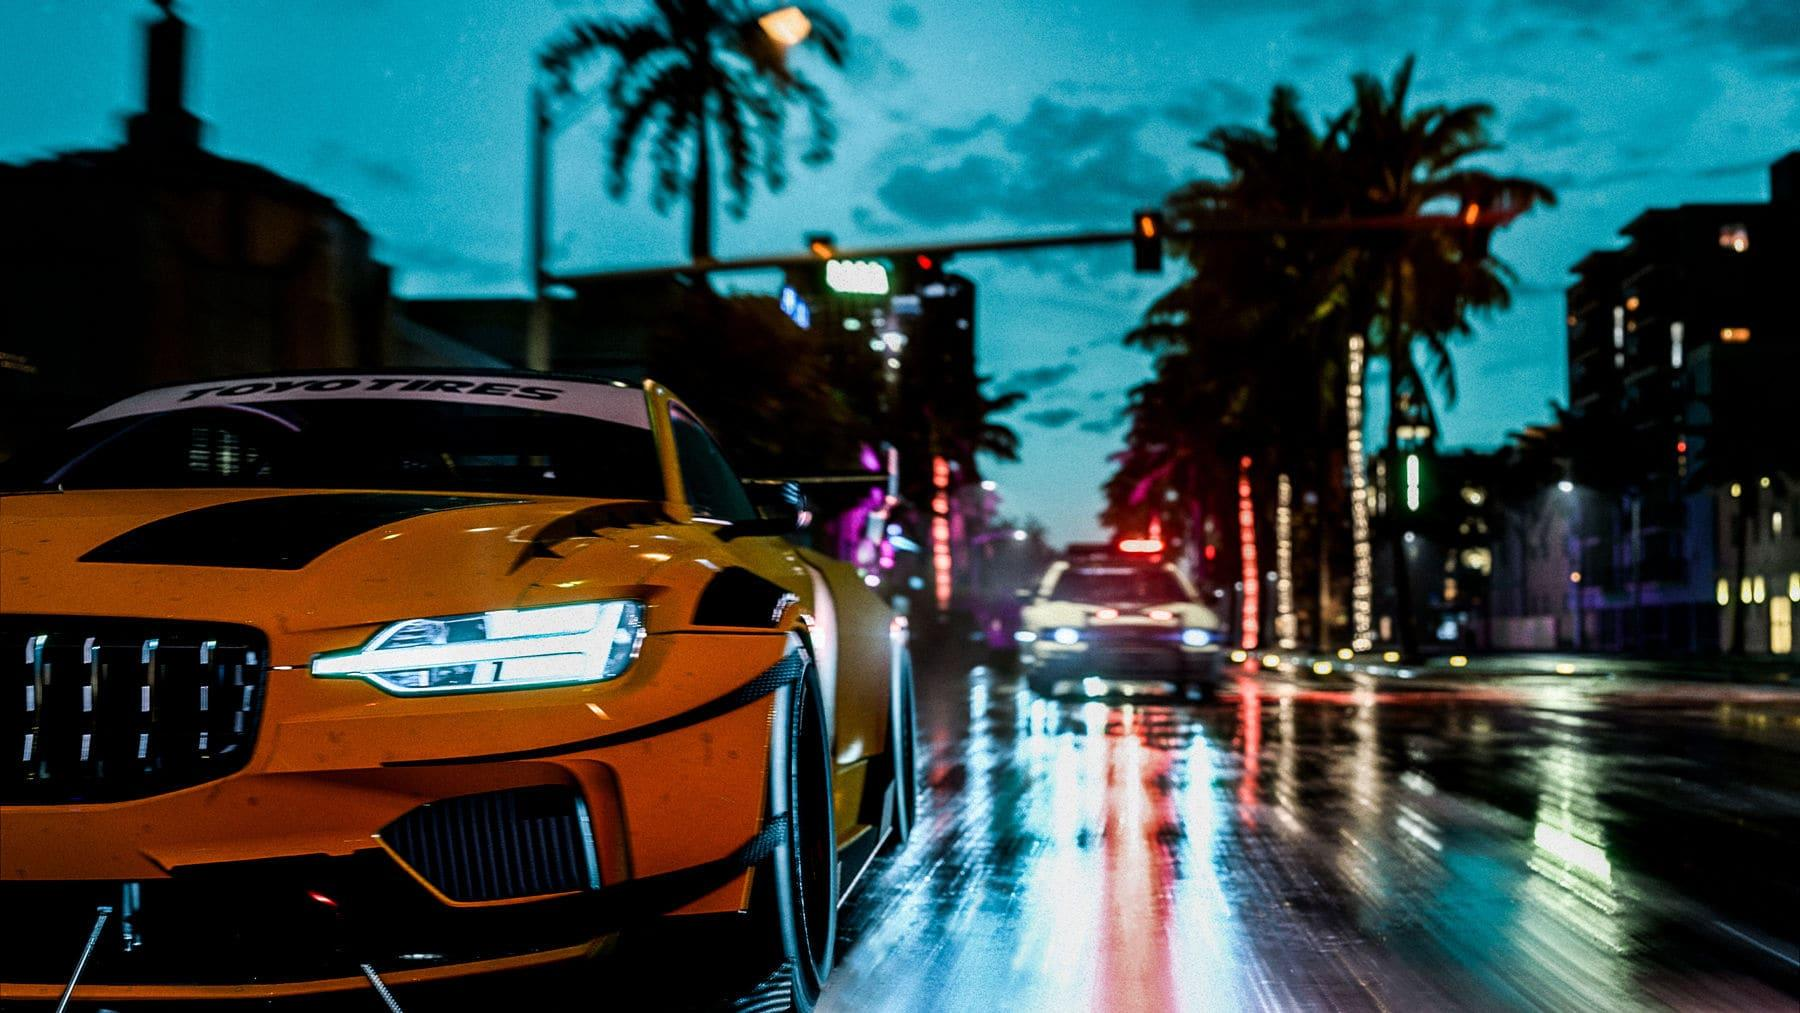 The Next Need For Speed Game Will Be Made By Burnout Creator